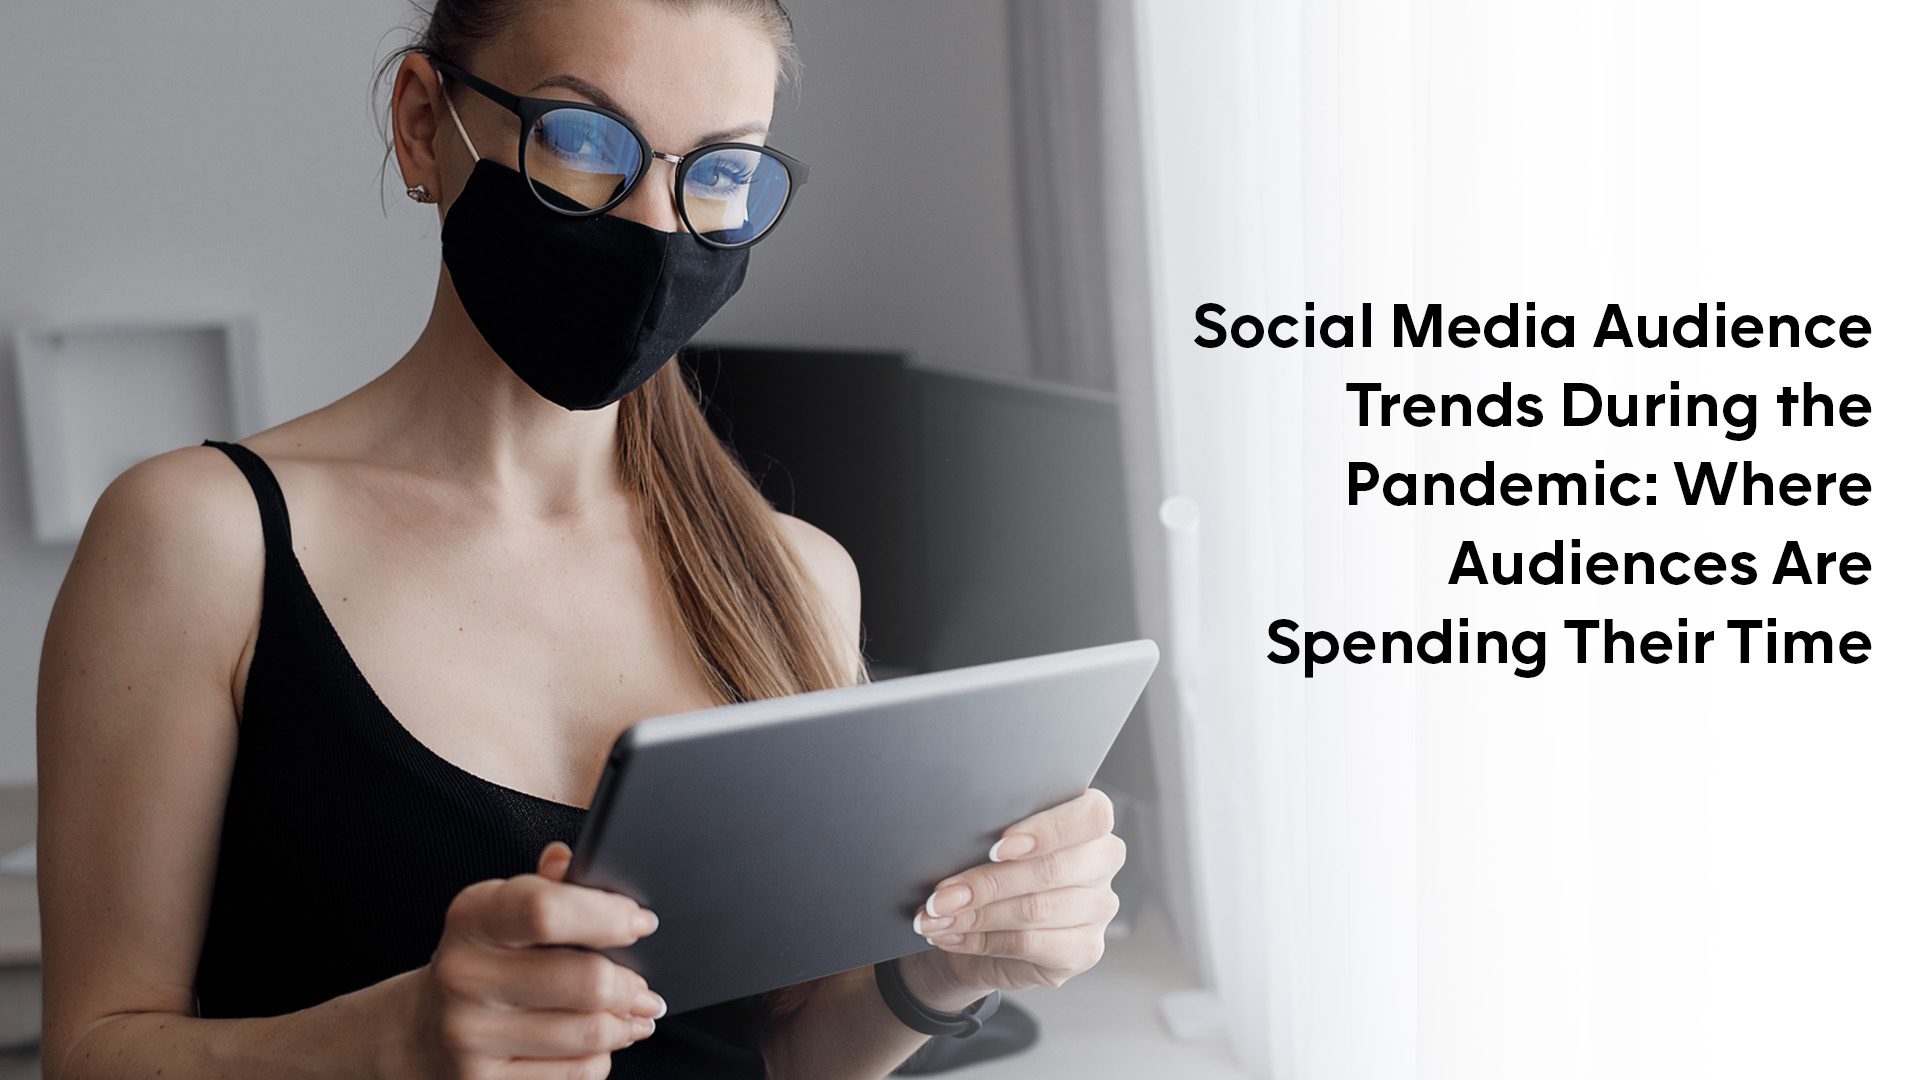 Social Media Audience Trends during the pandemic, a socially distanced social media user wears a mask to browse the internet